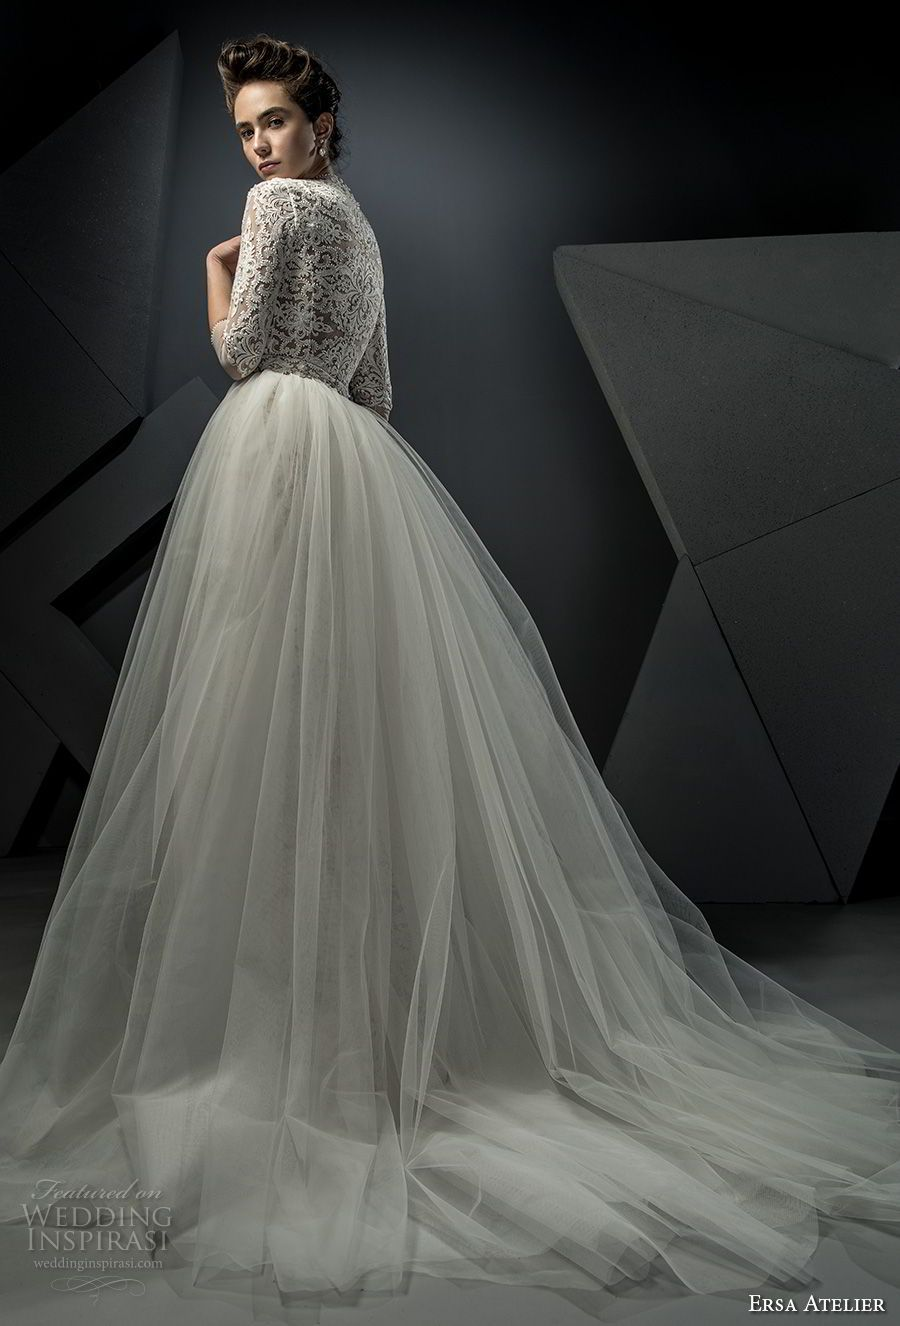 Weddinginspirasi.com featuring - ersa atelier spring 2018 bridal thiree quarters sleeves high neck heavily embellished bodice tulle skirt elegant modest a  line wedding dress covered lace back chapel train (8) bv -- Ersa Atelier Spring 2018 Wedding Dresses  #wedding #weddings #bridal #weddingdress #weddingdresses #bride #fashion #label:ErsaAtelier #romania #season:Spring/Summer #year:2018 ~